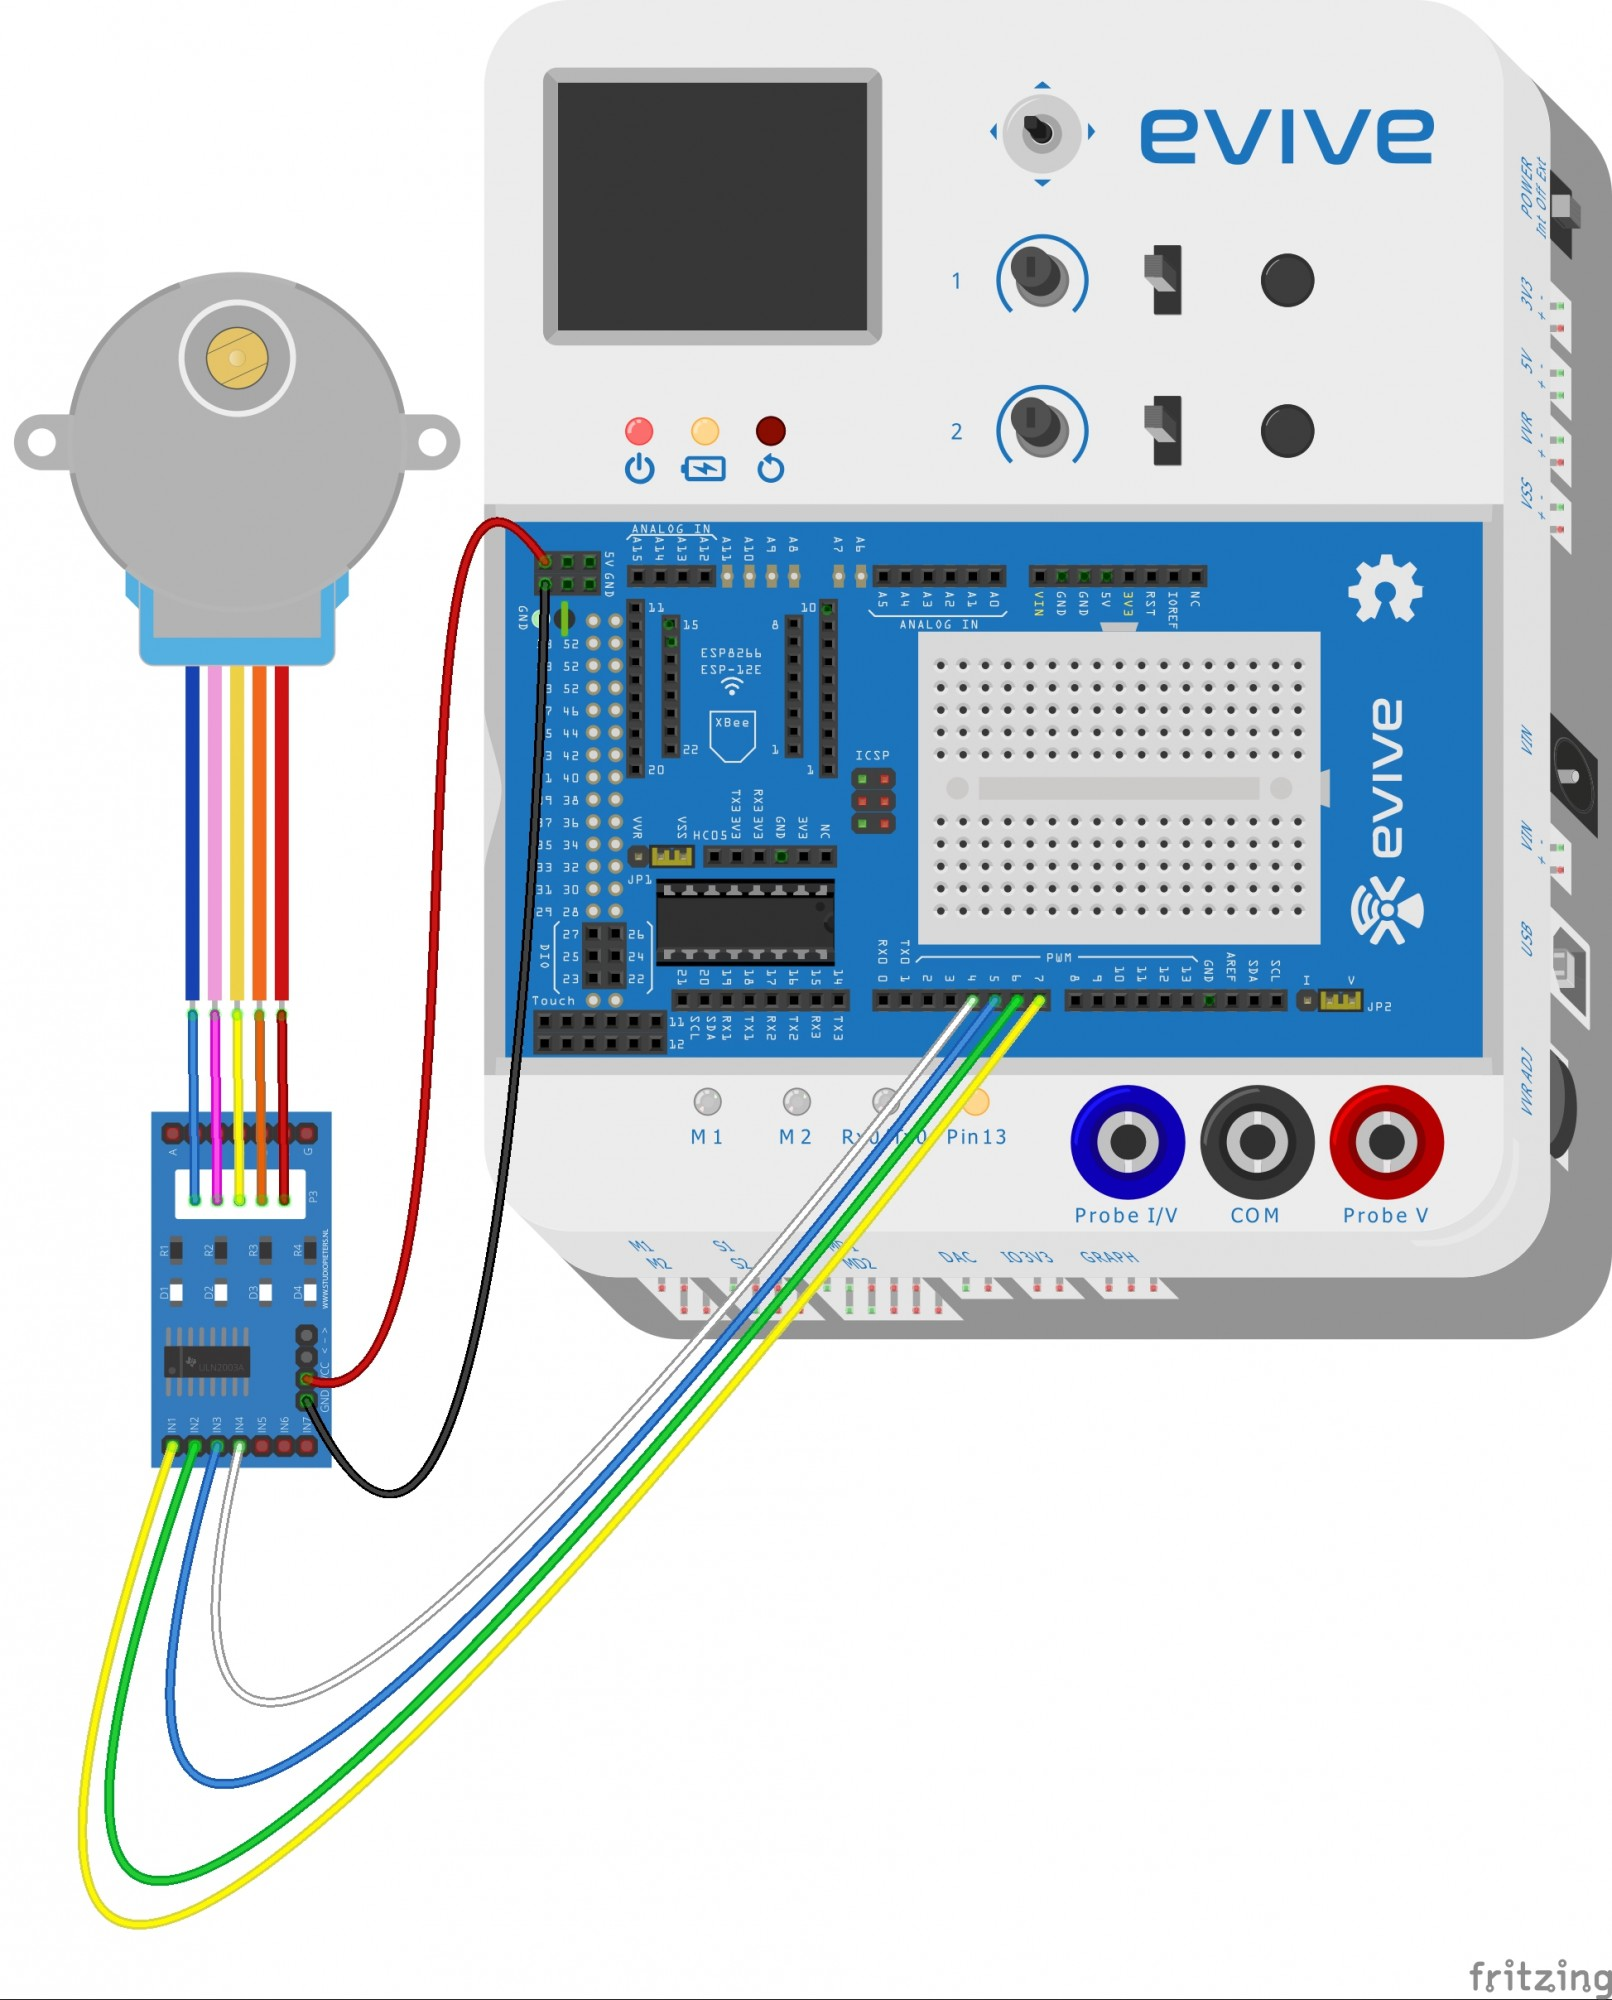 hight resolution of connect 28 byj48 stepper motor 5 wire female bus with uln2003 stepper motor driver male bus as shown in figure